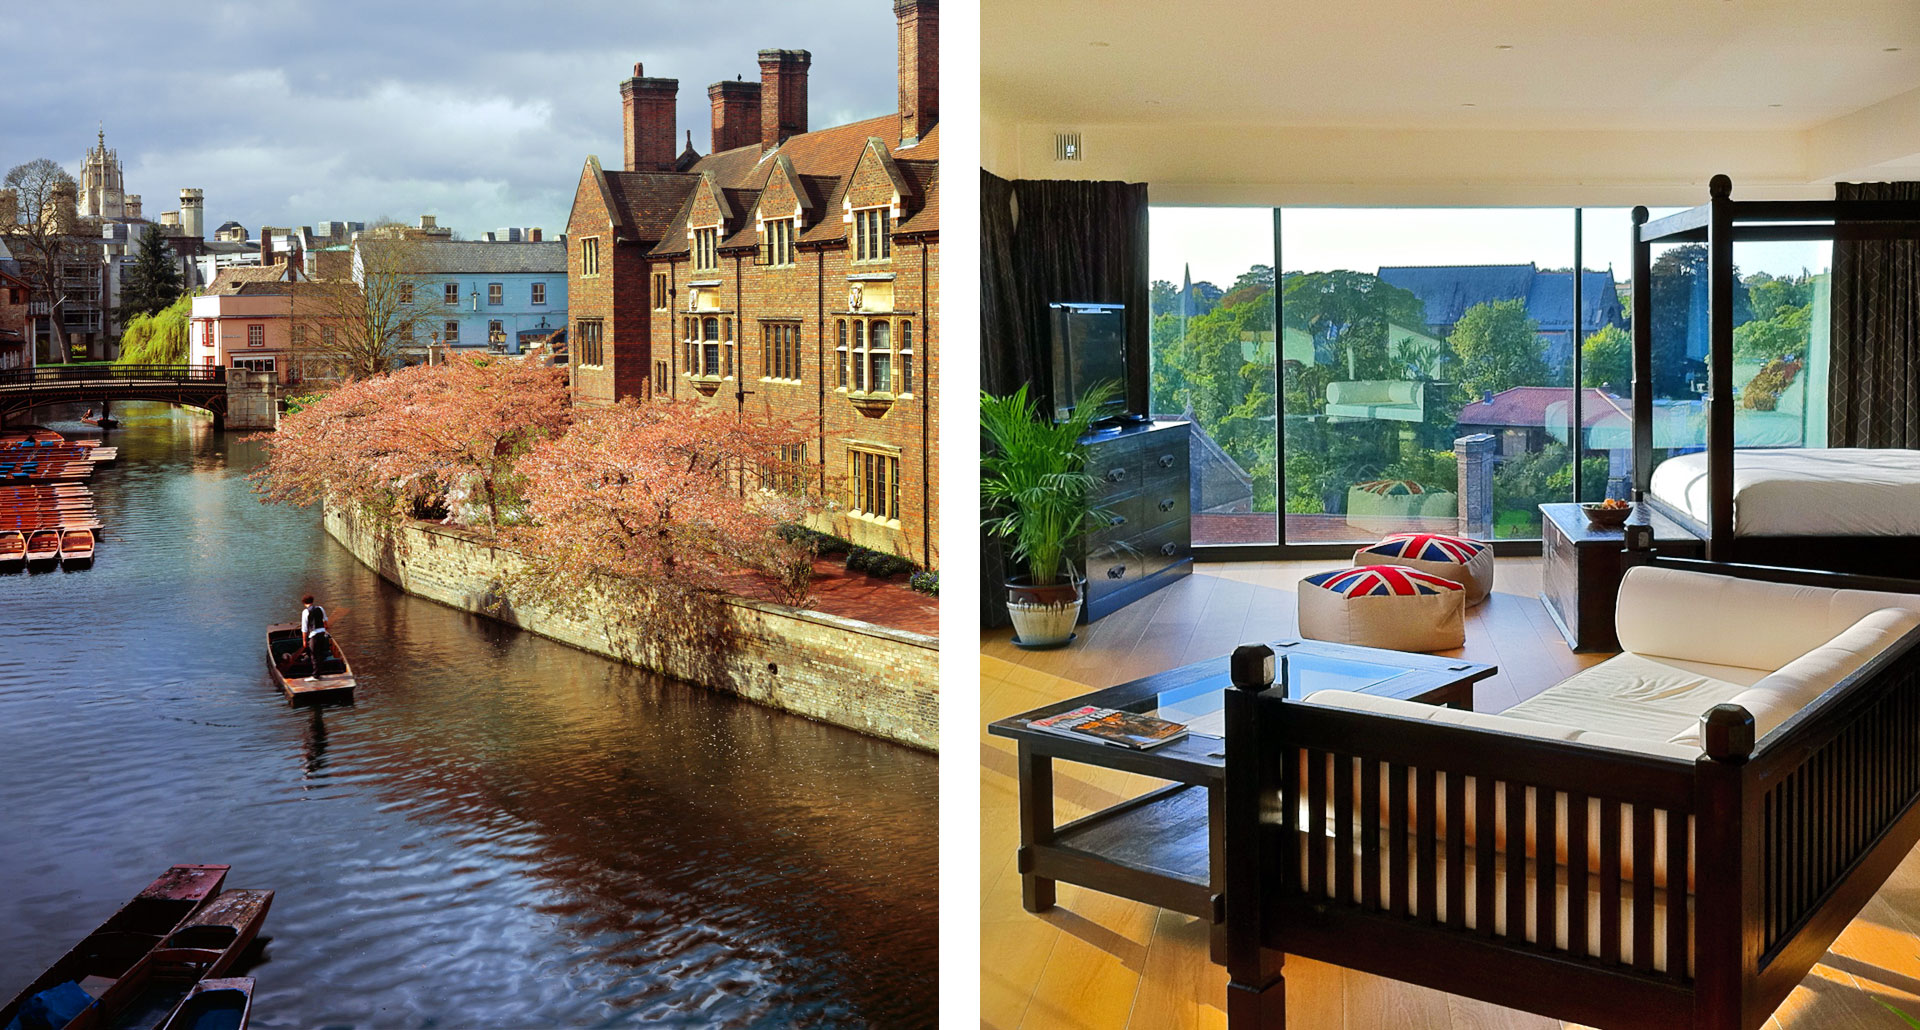 The Varsity Hotel and Spa - boutique hotel in Cambridge